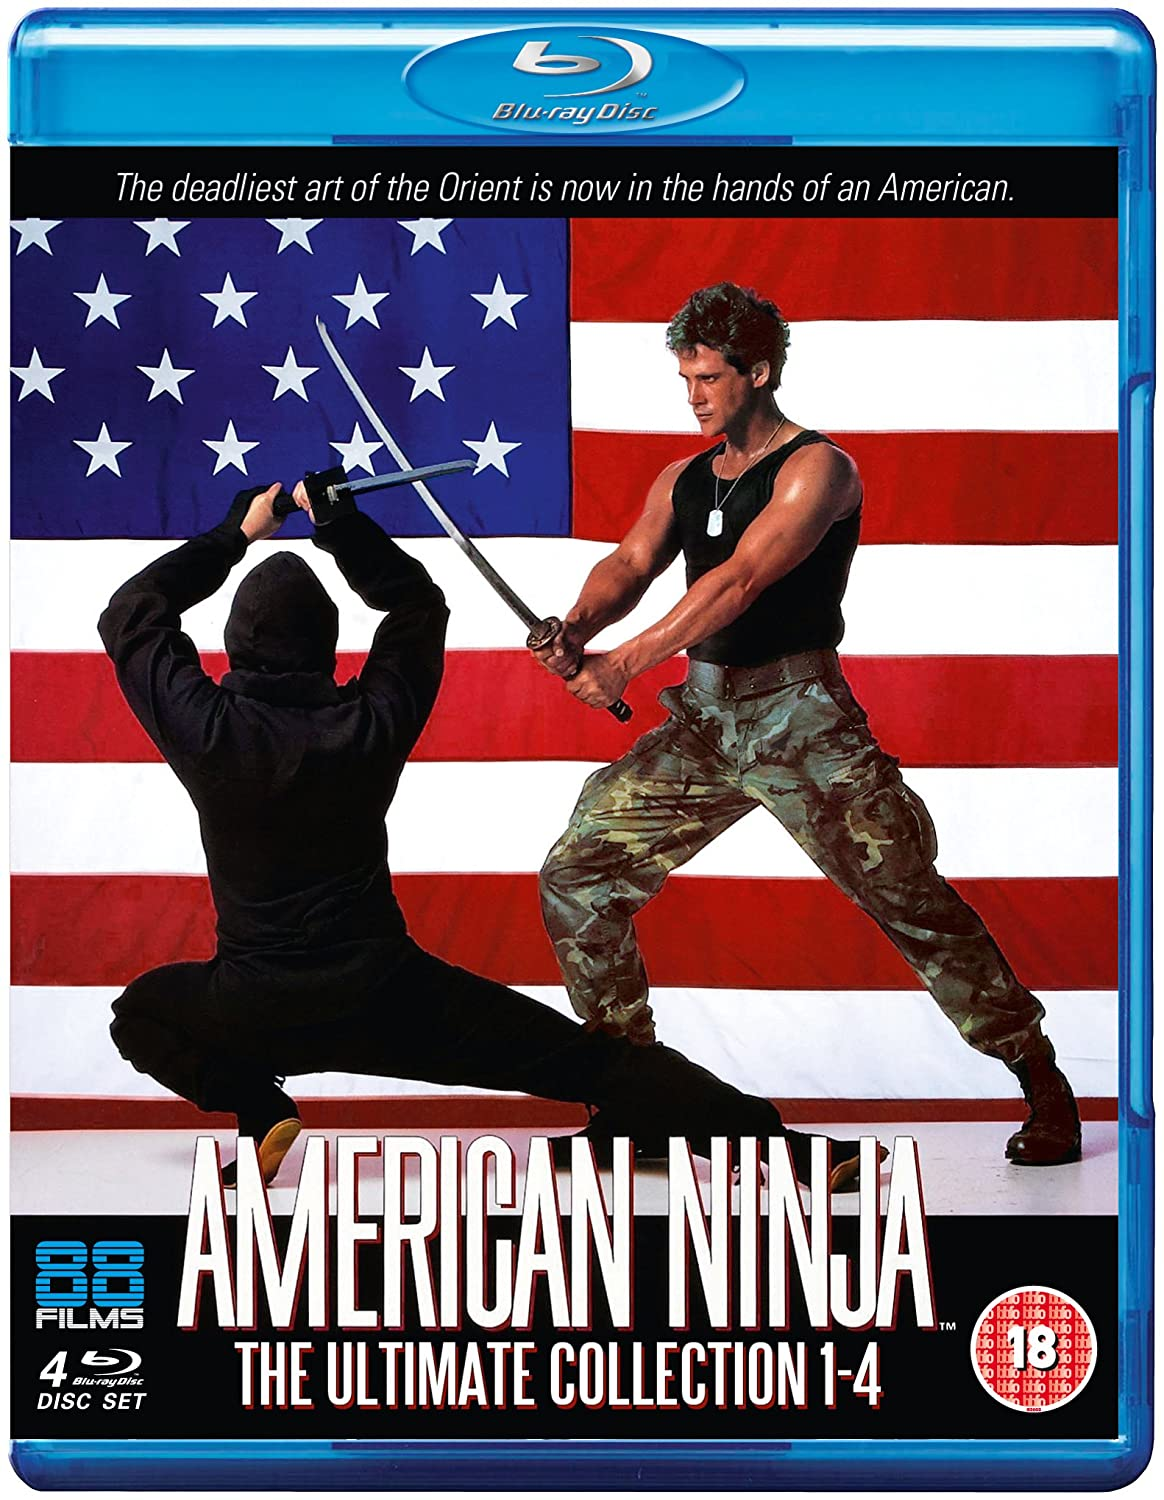 Amazon.com: American Ninja 1-4 Collectors Edition [Blu-ray ...